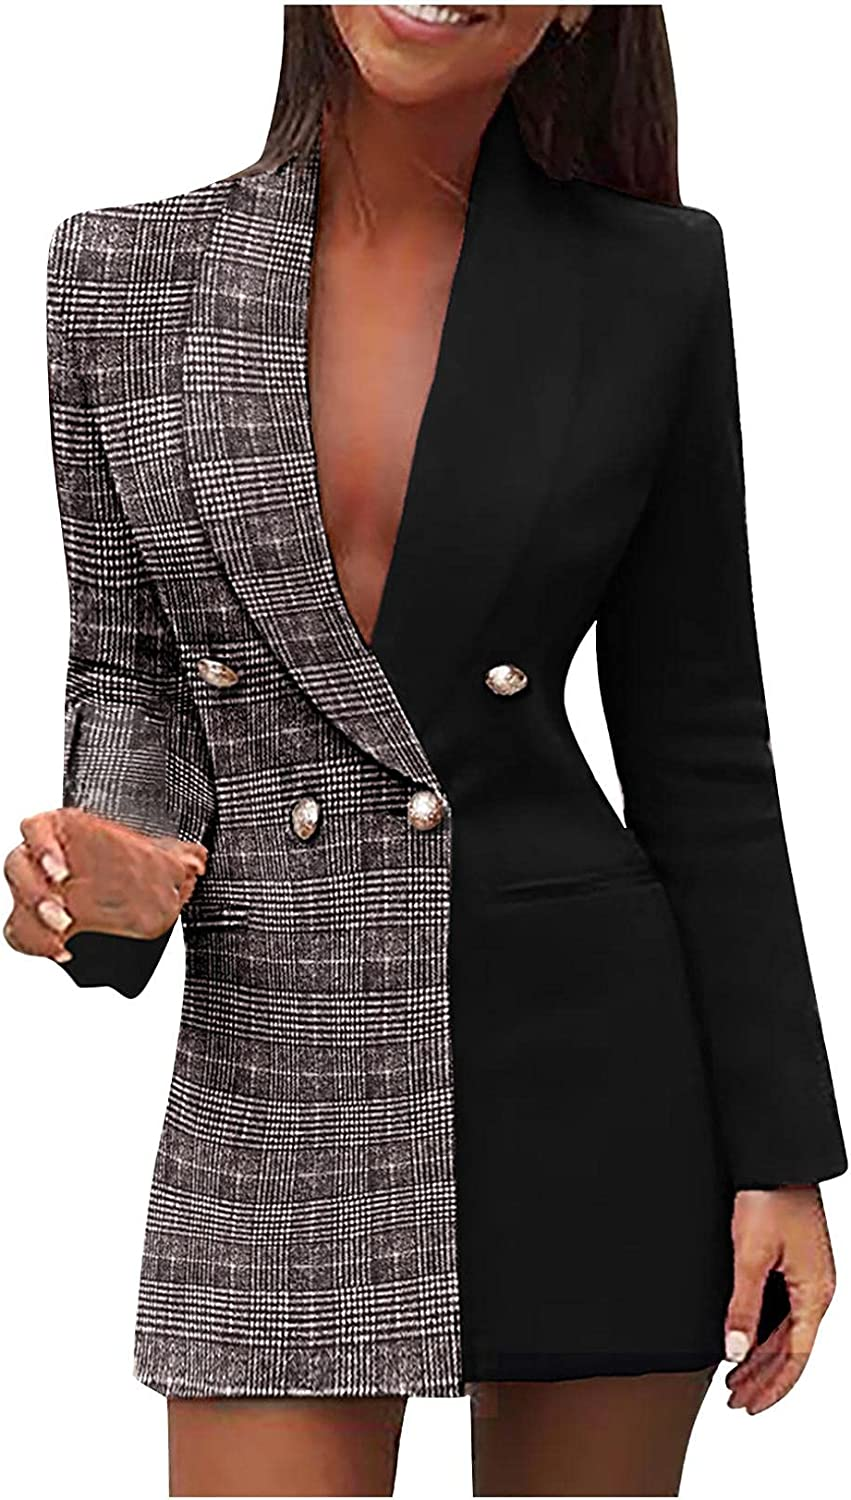 Formal Business Dresses for Women Casual Elegant Bodycon Dress Button up Work Office Party Pencil Midi Suit Dresses